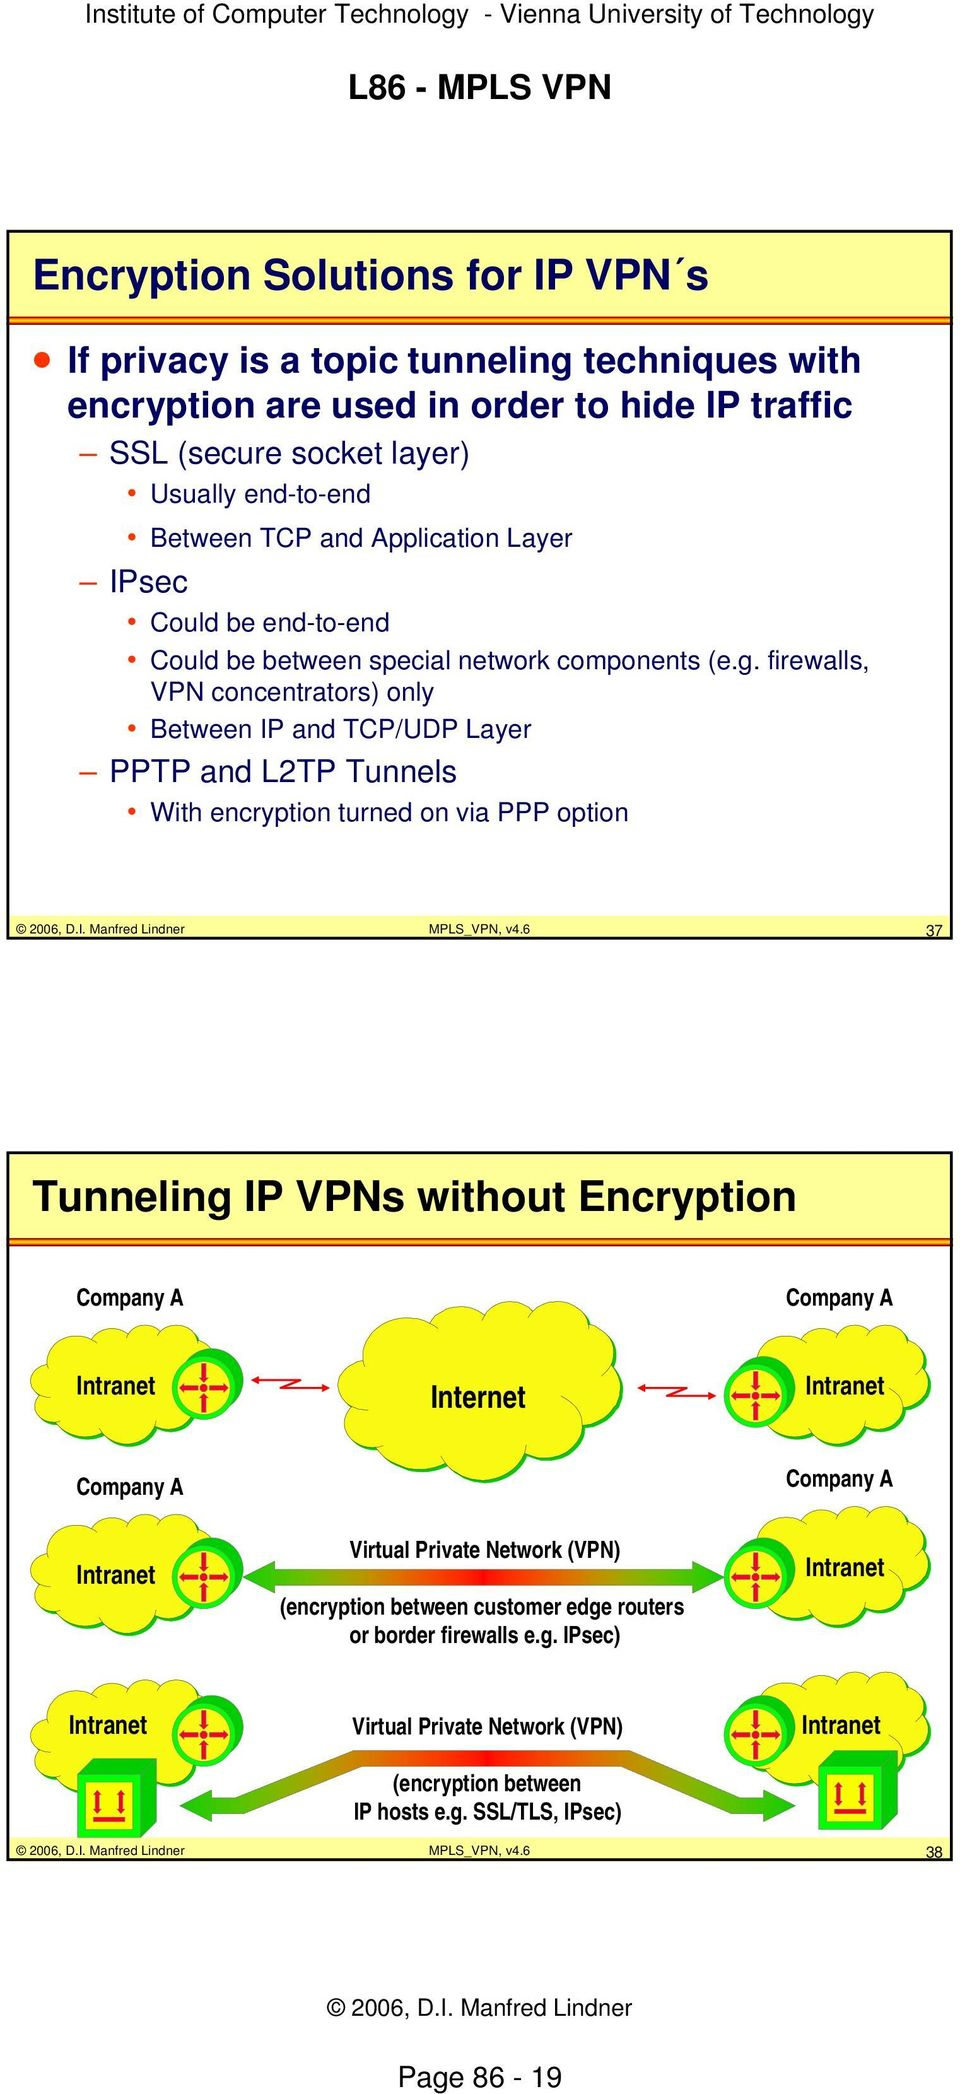 firewalls, VPN concentrators) only Between IP and TCP/UDP Layer PPTP and L2TP Tunnels With encryption turned on via PPP option MPLS_VPN, v4.